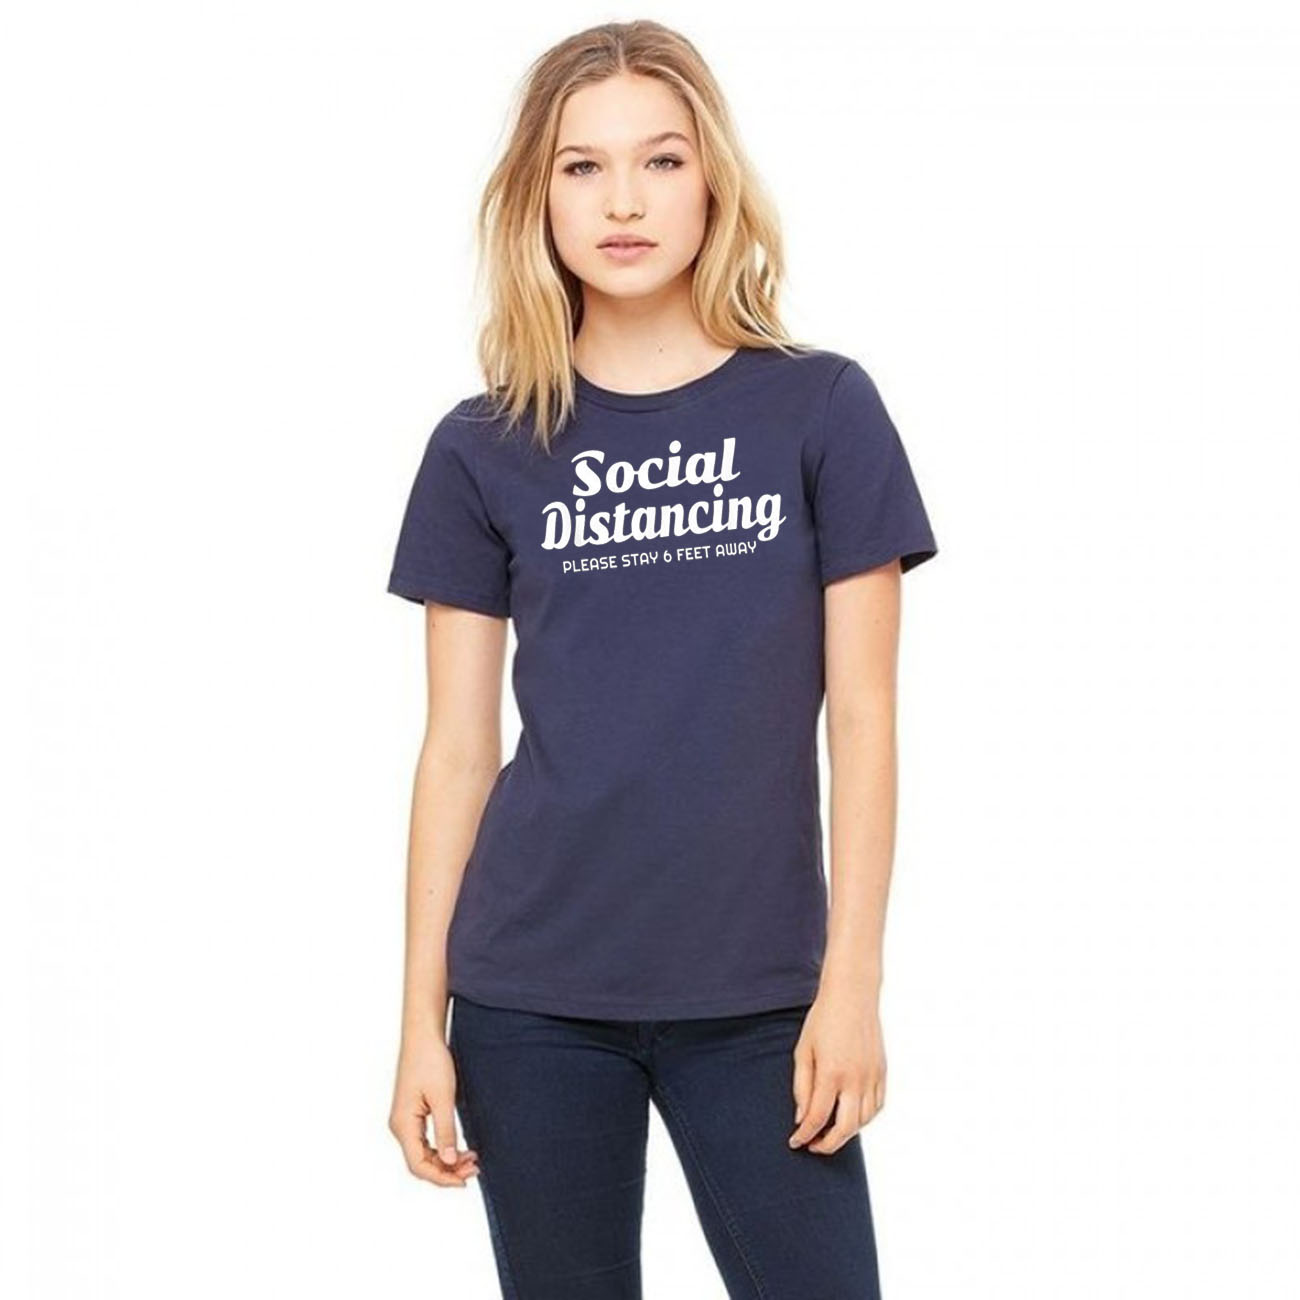 #Social distancing Shirt Please Stay 6 Feet Away Anti Social Classic T-Shirt